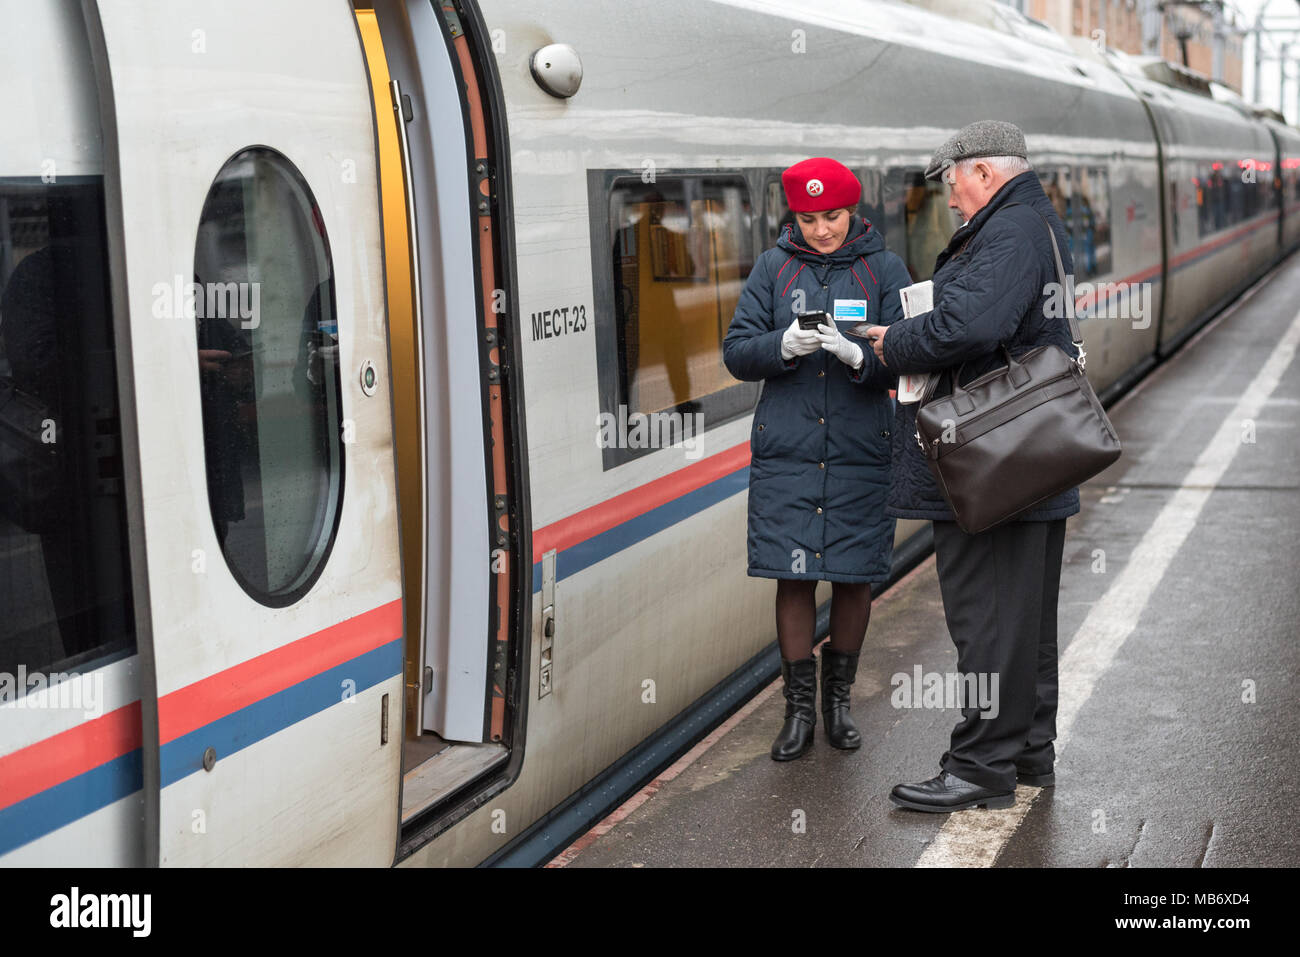 Train conductor (red beret, jacket) of Sapsan train checks in passenger using electronic device at Moskovsky railway station, Saint Petersburg, Russia Stock Photo